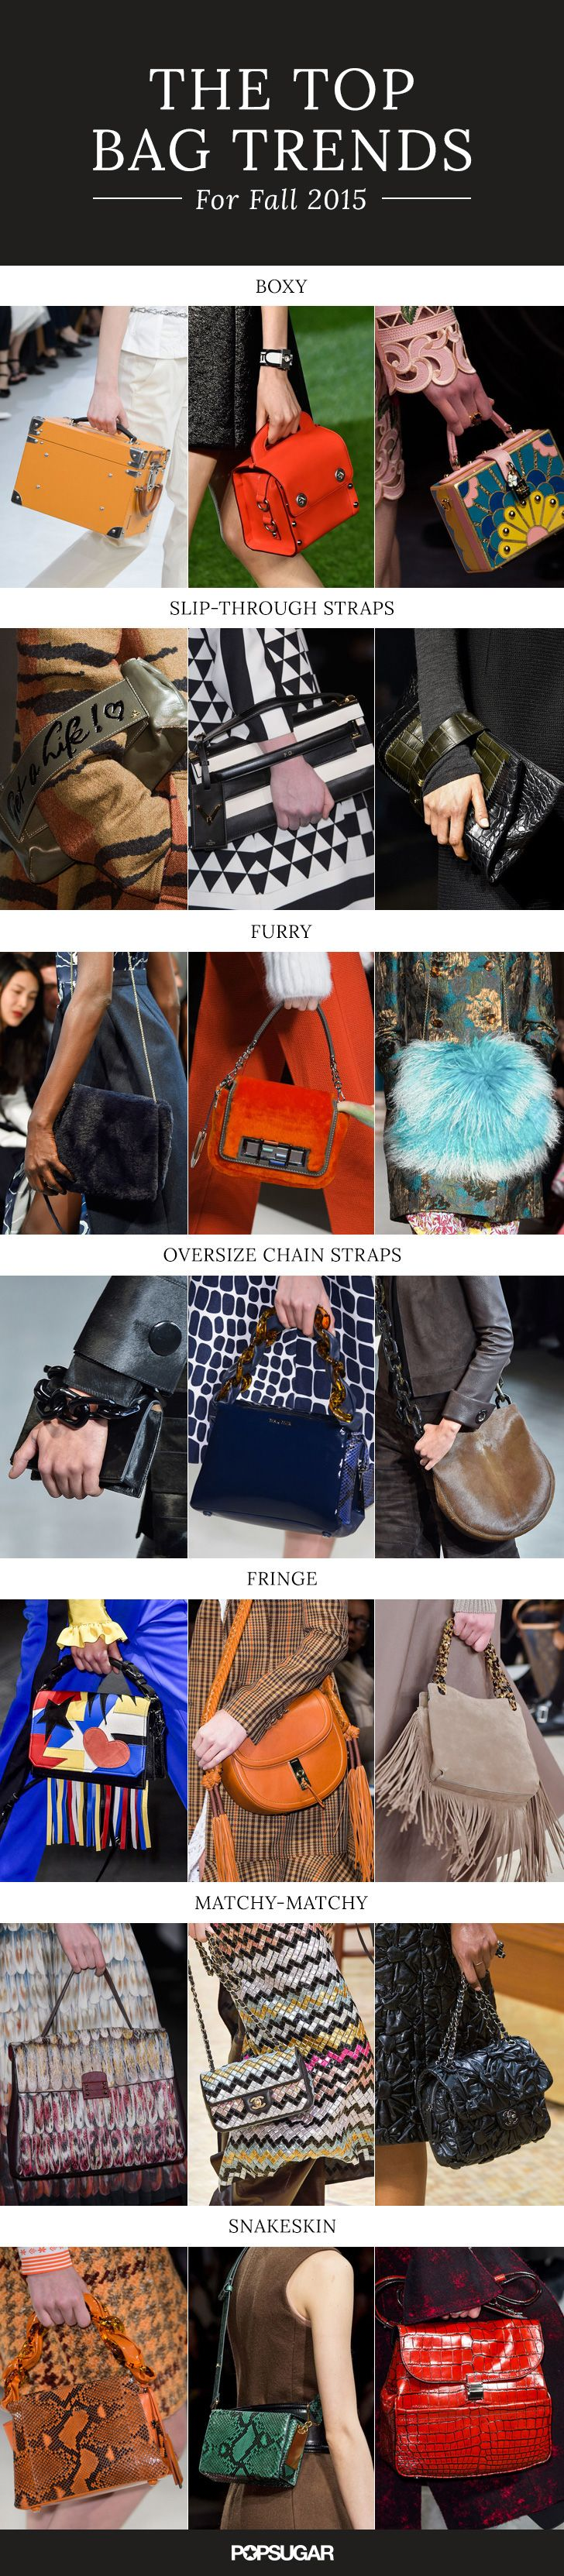 The biggest bag trends for Fall 2015